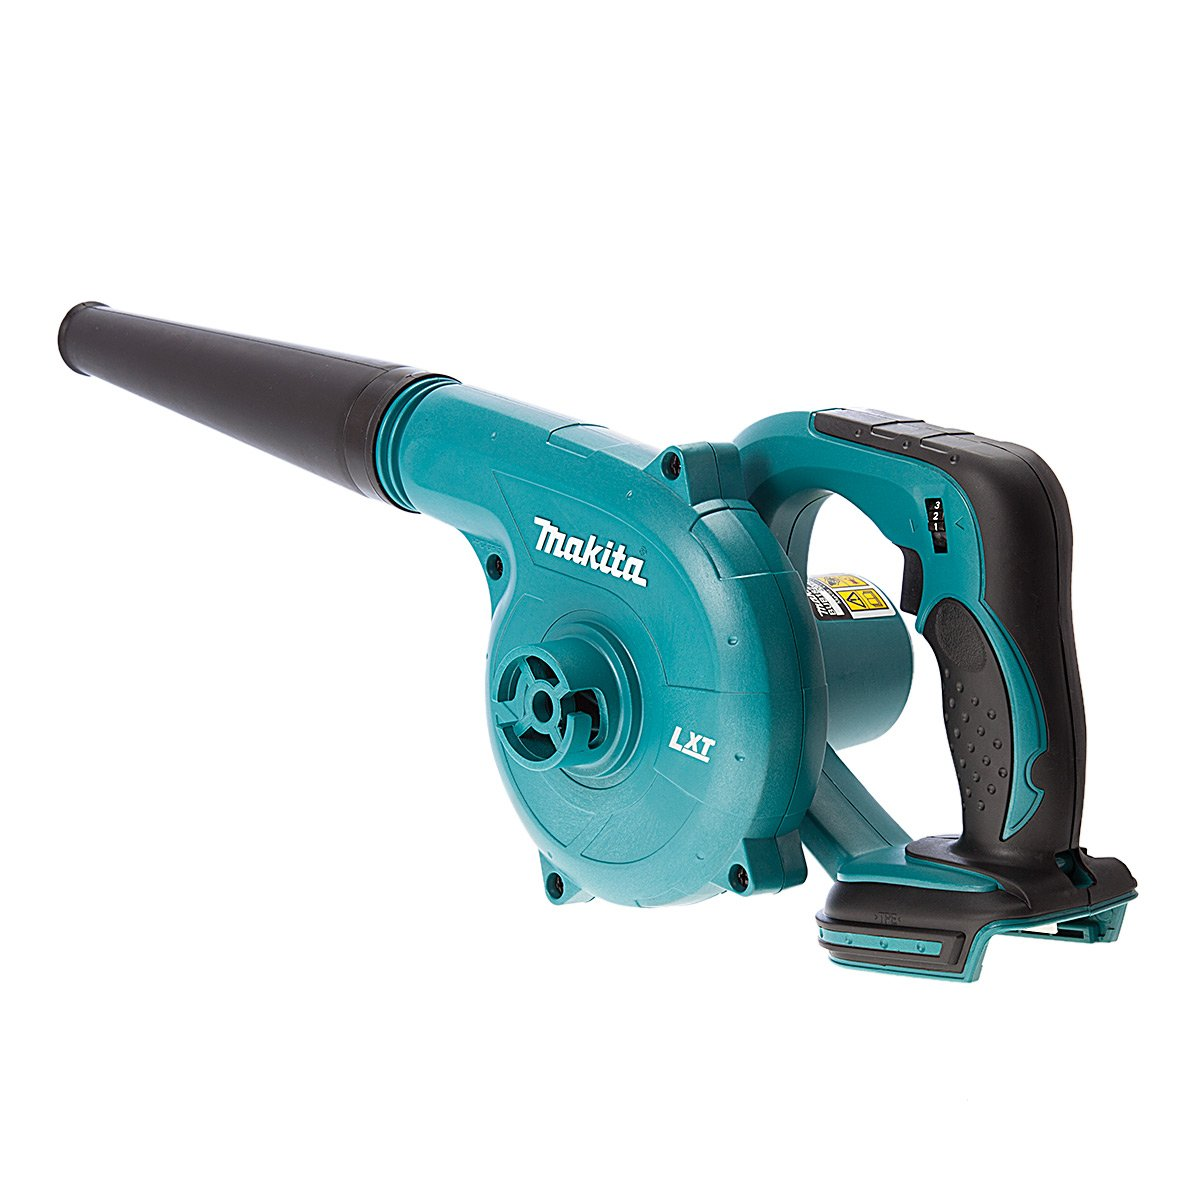 Makita DUB182Z 18V LXT Lithium-Ion Cordless Blower, Tool Only